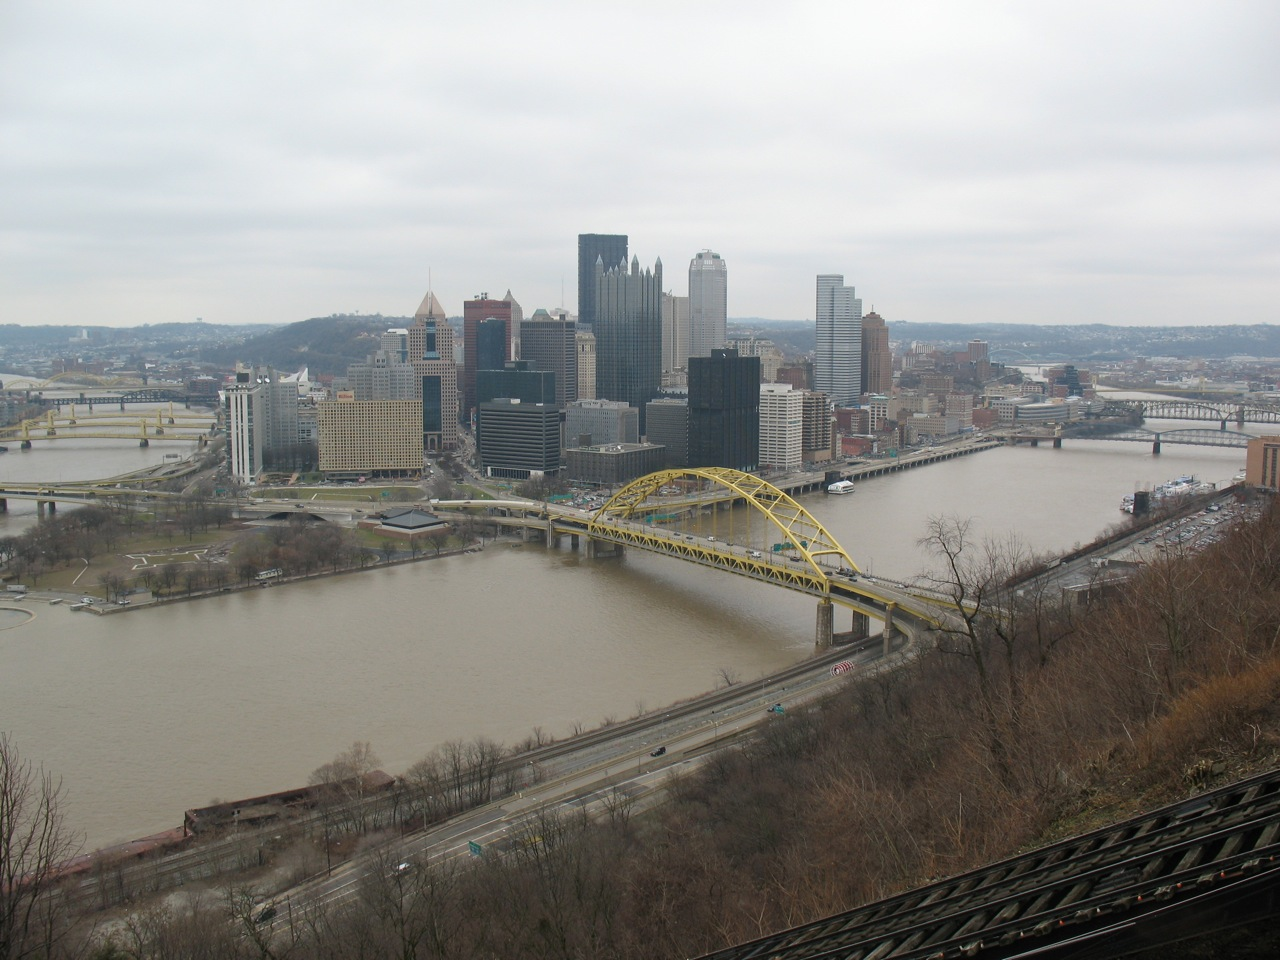 Duquesne Incline - View fom the Observation deck.